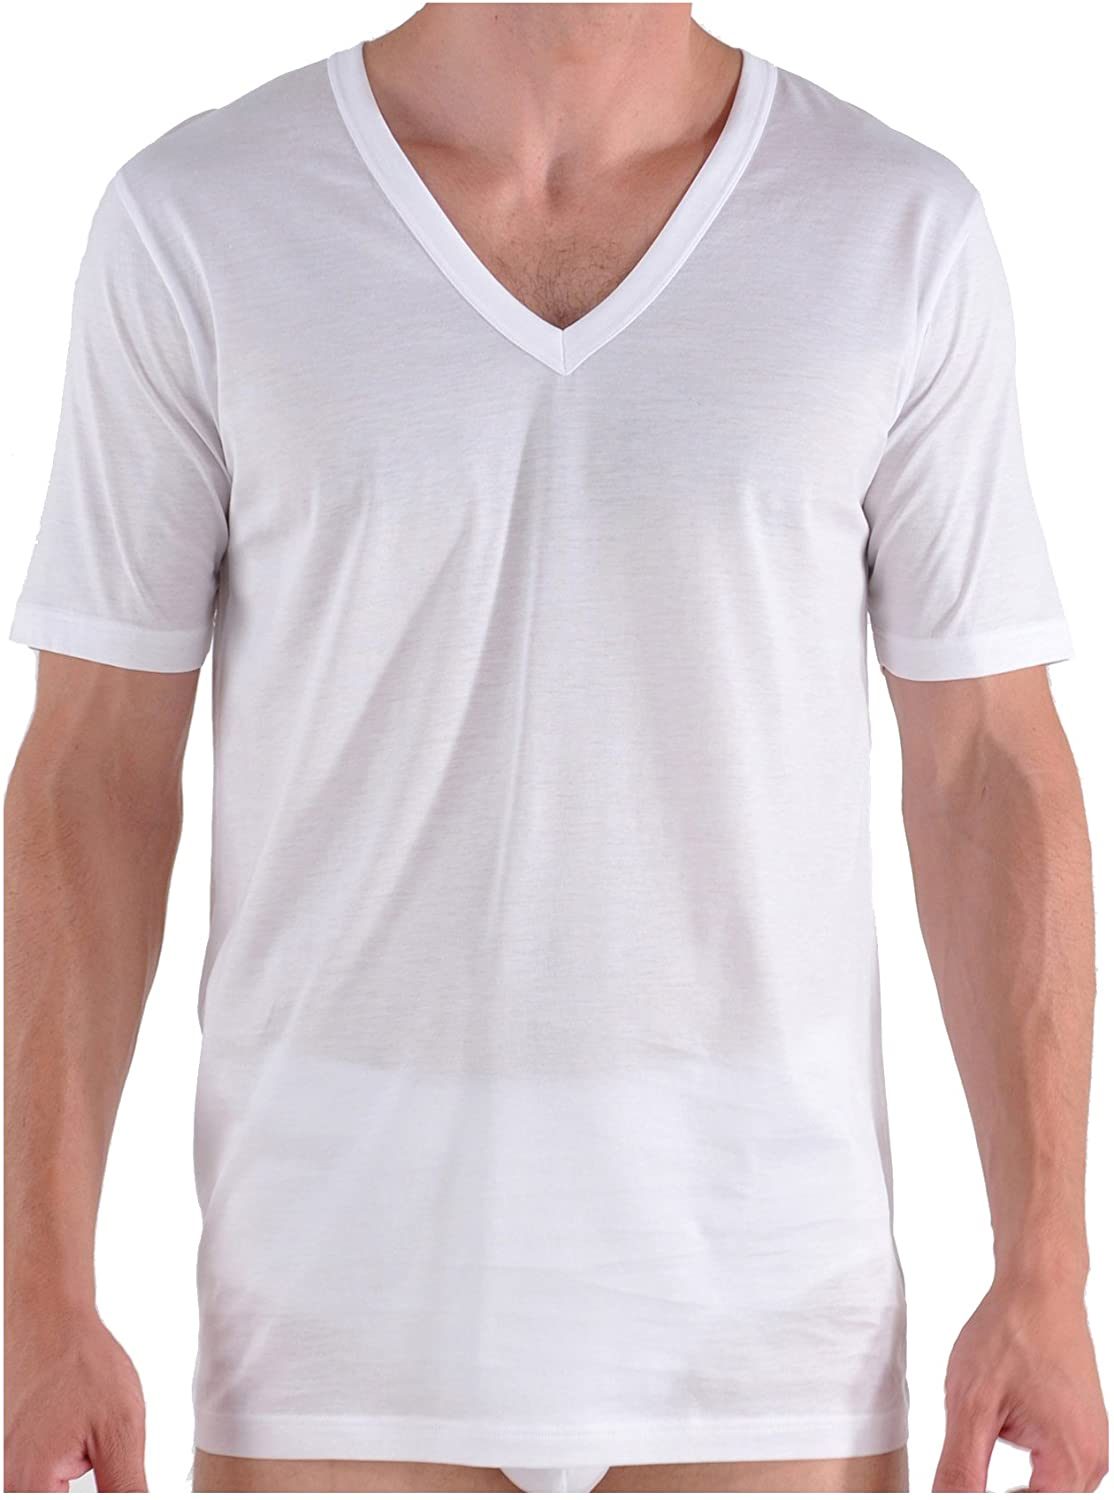 Bresciani Supremo Reale 2x2 Egyptian Cotton Italian-Made V-Neck Undershirt